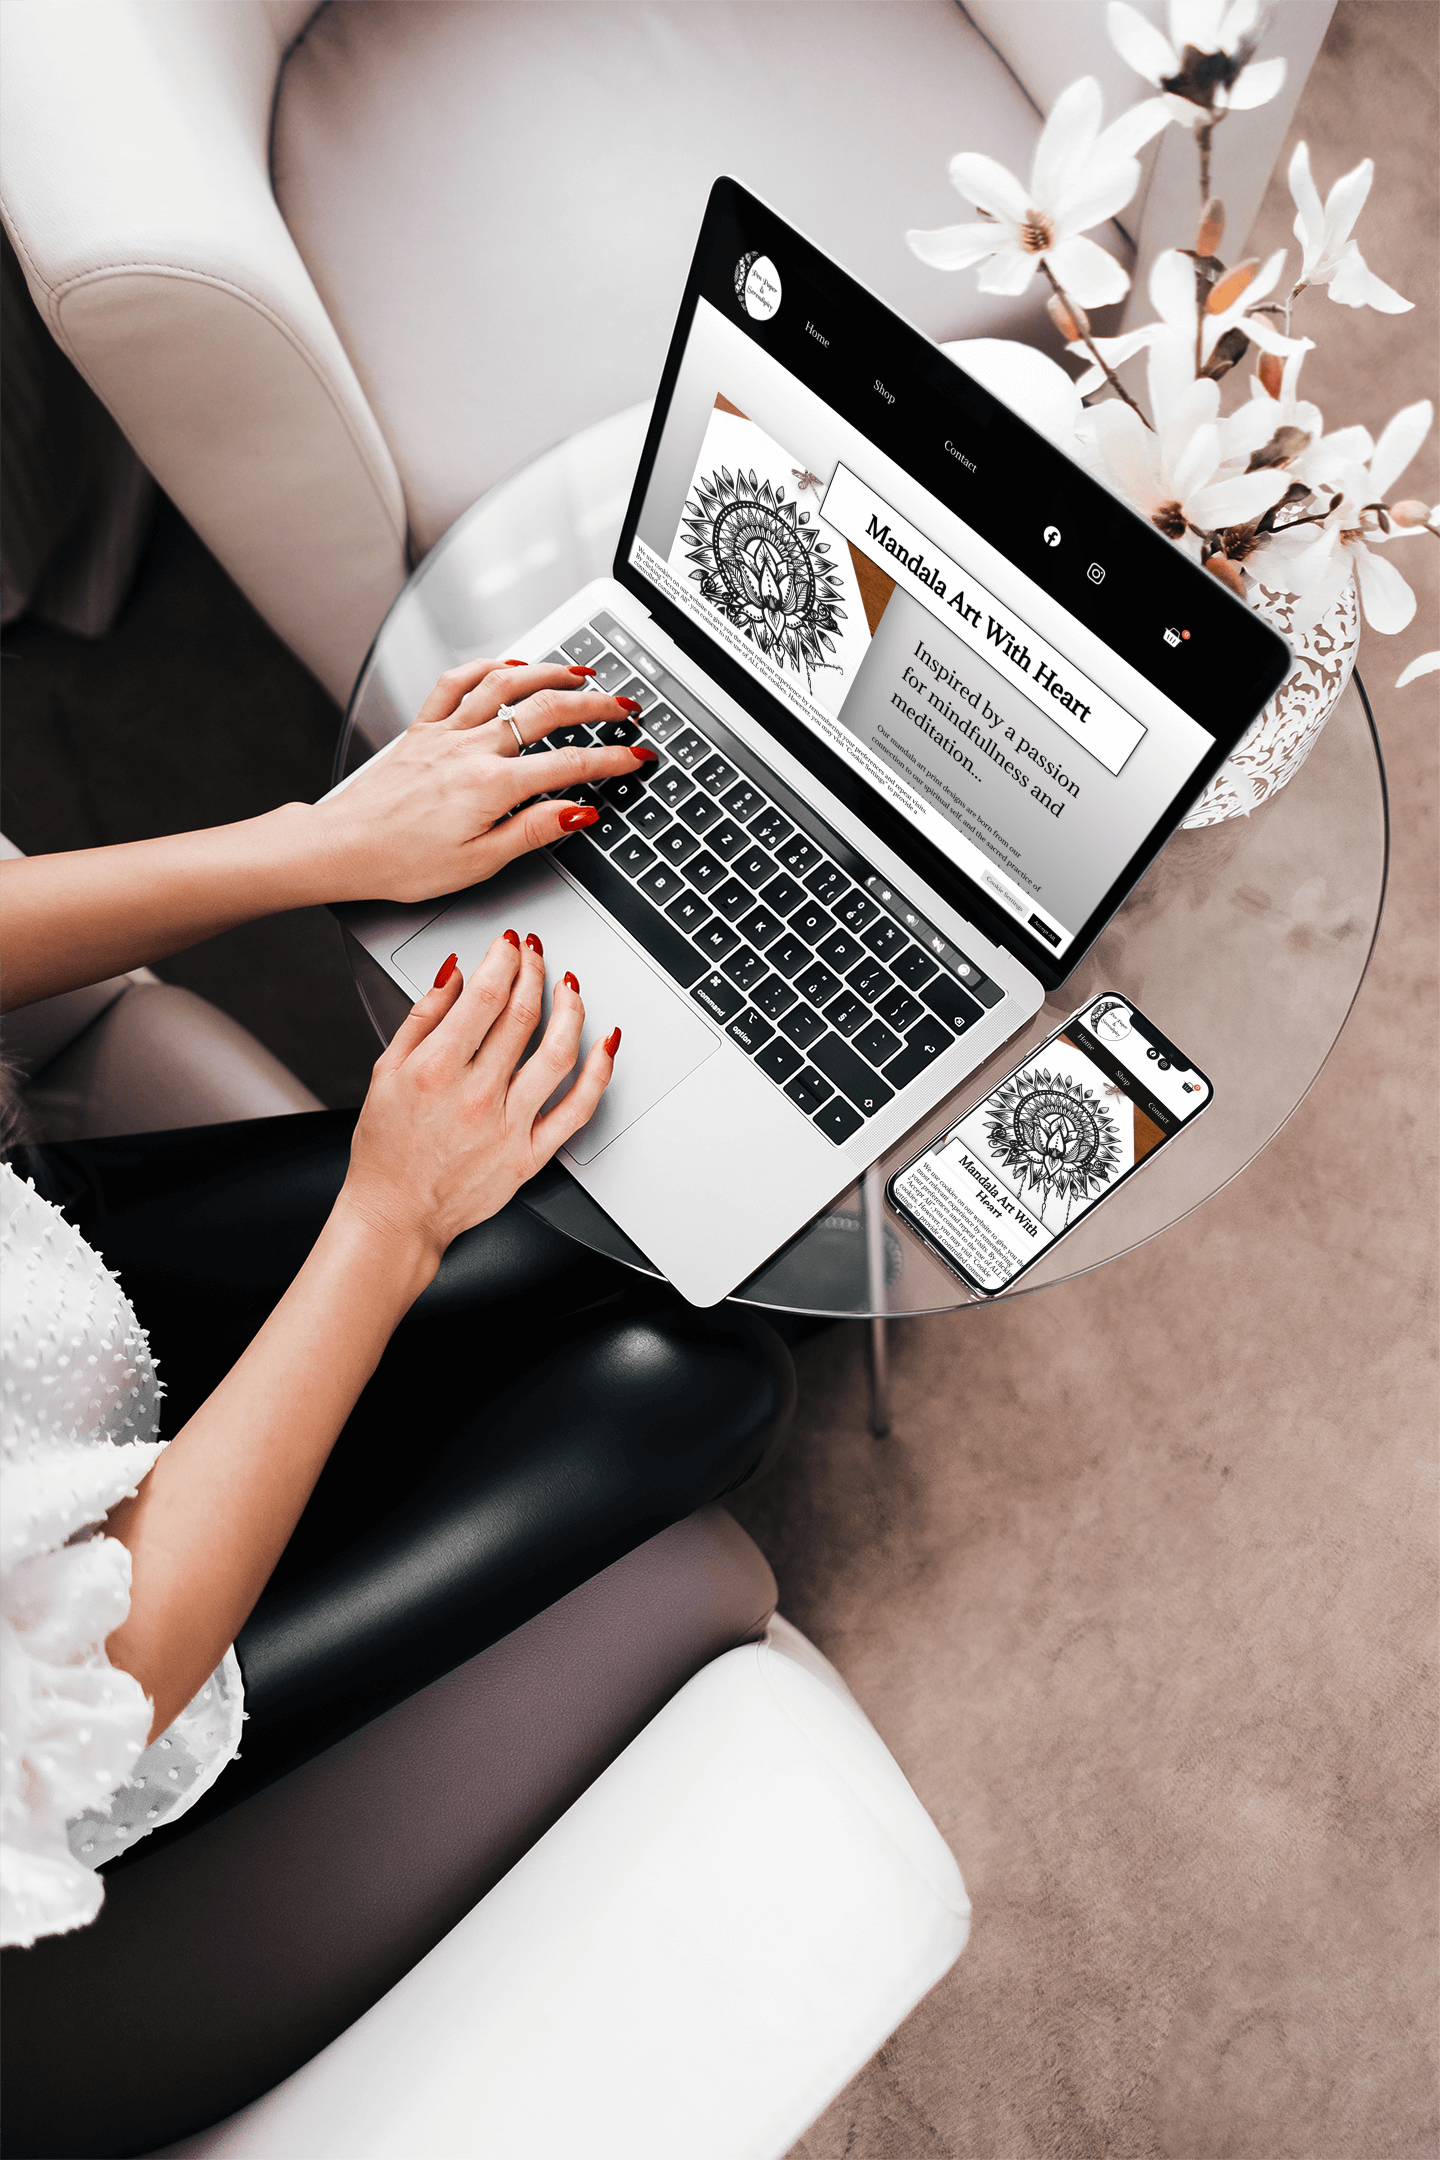 iphone-11-pro-mockup-of-a-businesswoman-working-on-her-macbook-pro-3827-el1 (1)